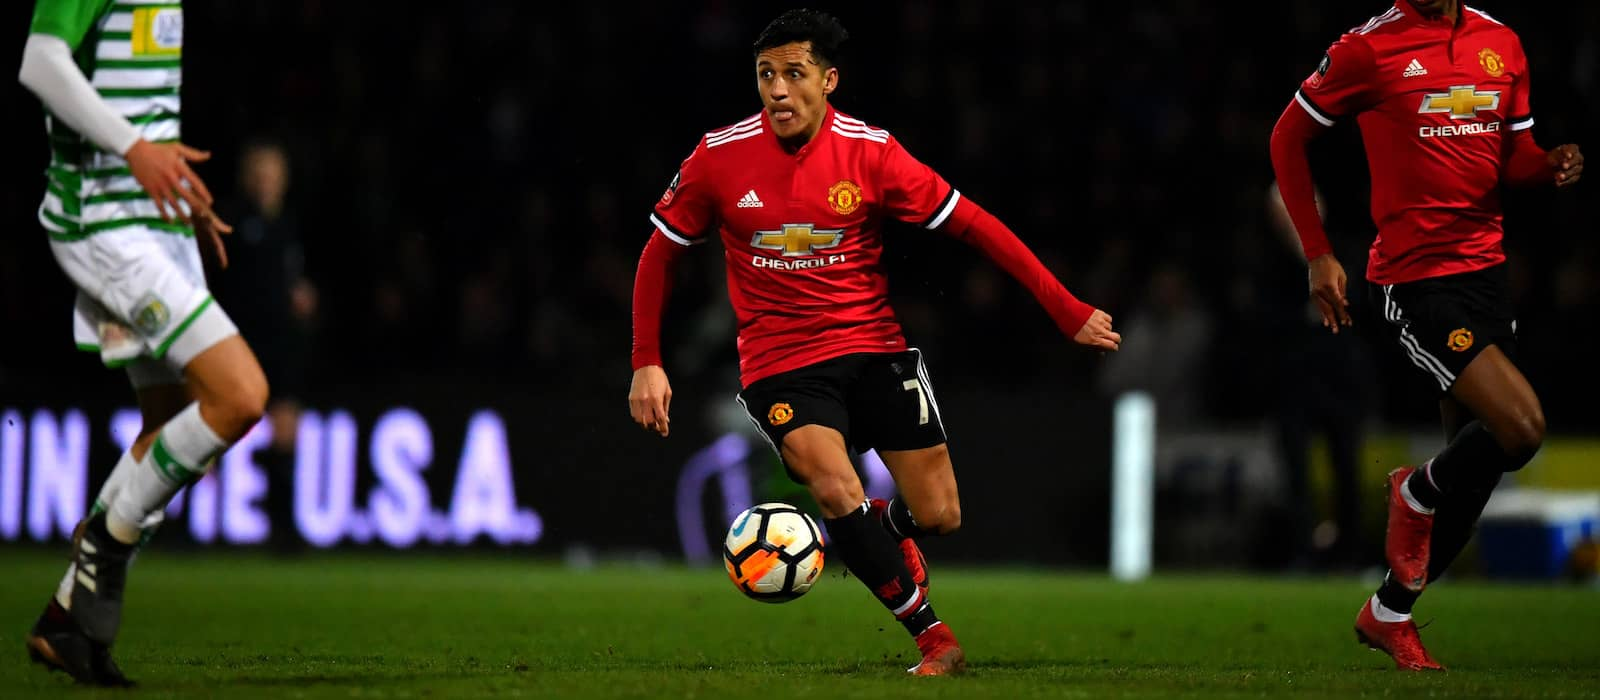 Ed Woodward insists Alexis Sanchez's wages aren't a problem for Manchester United